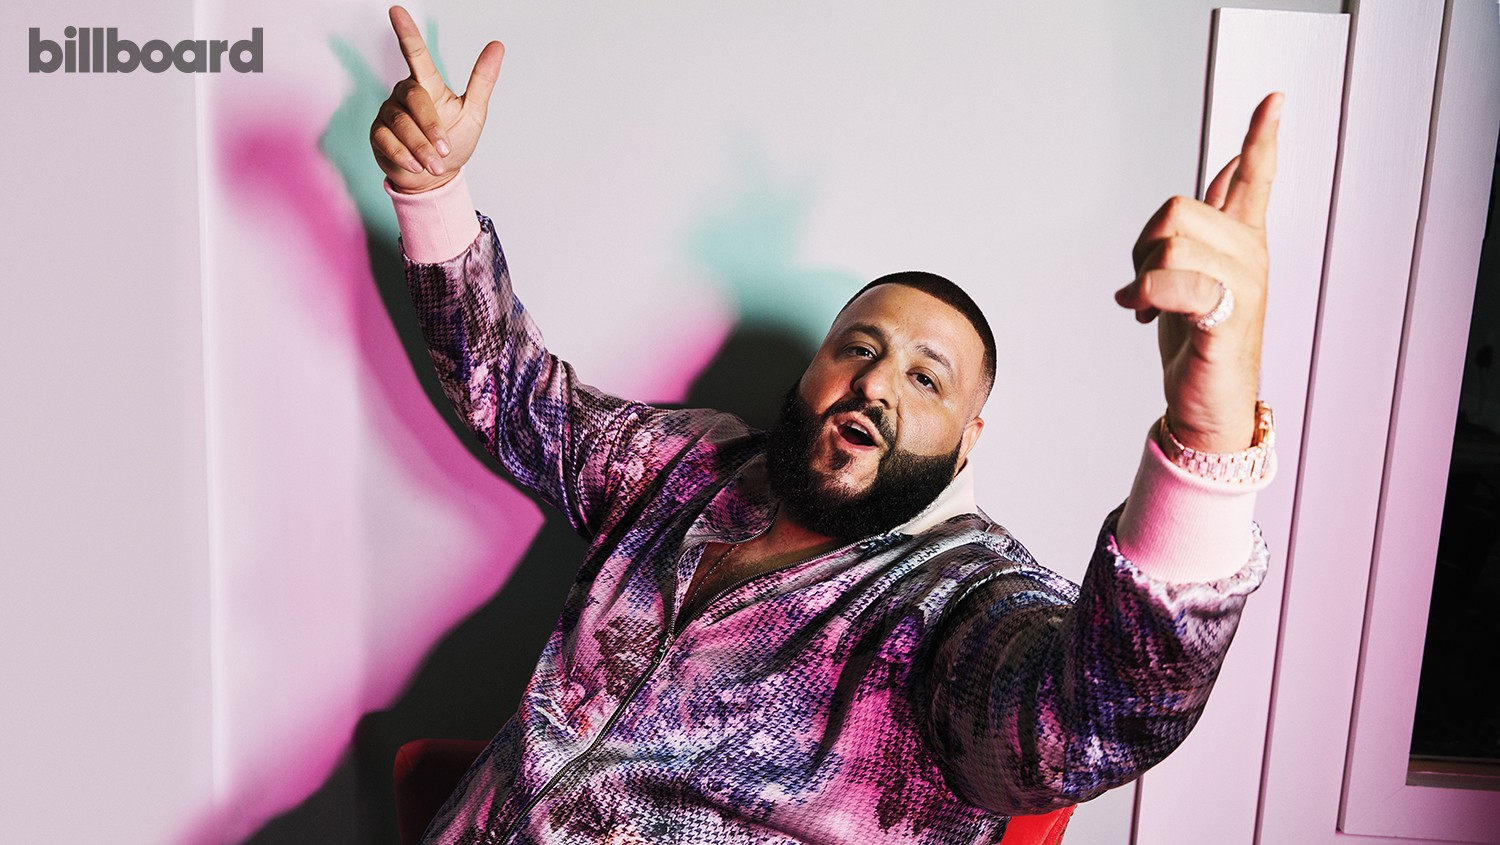 DJ Khaled photographed on May 8th at The Fig House in Los Angeles. Styling by Terrell Jones. All clothing by Terrell Jones and produced by 5001 Flavors. Shoes by Jordan Brand.